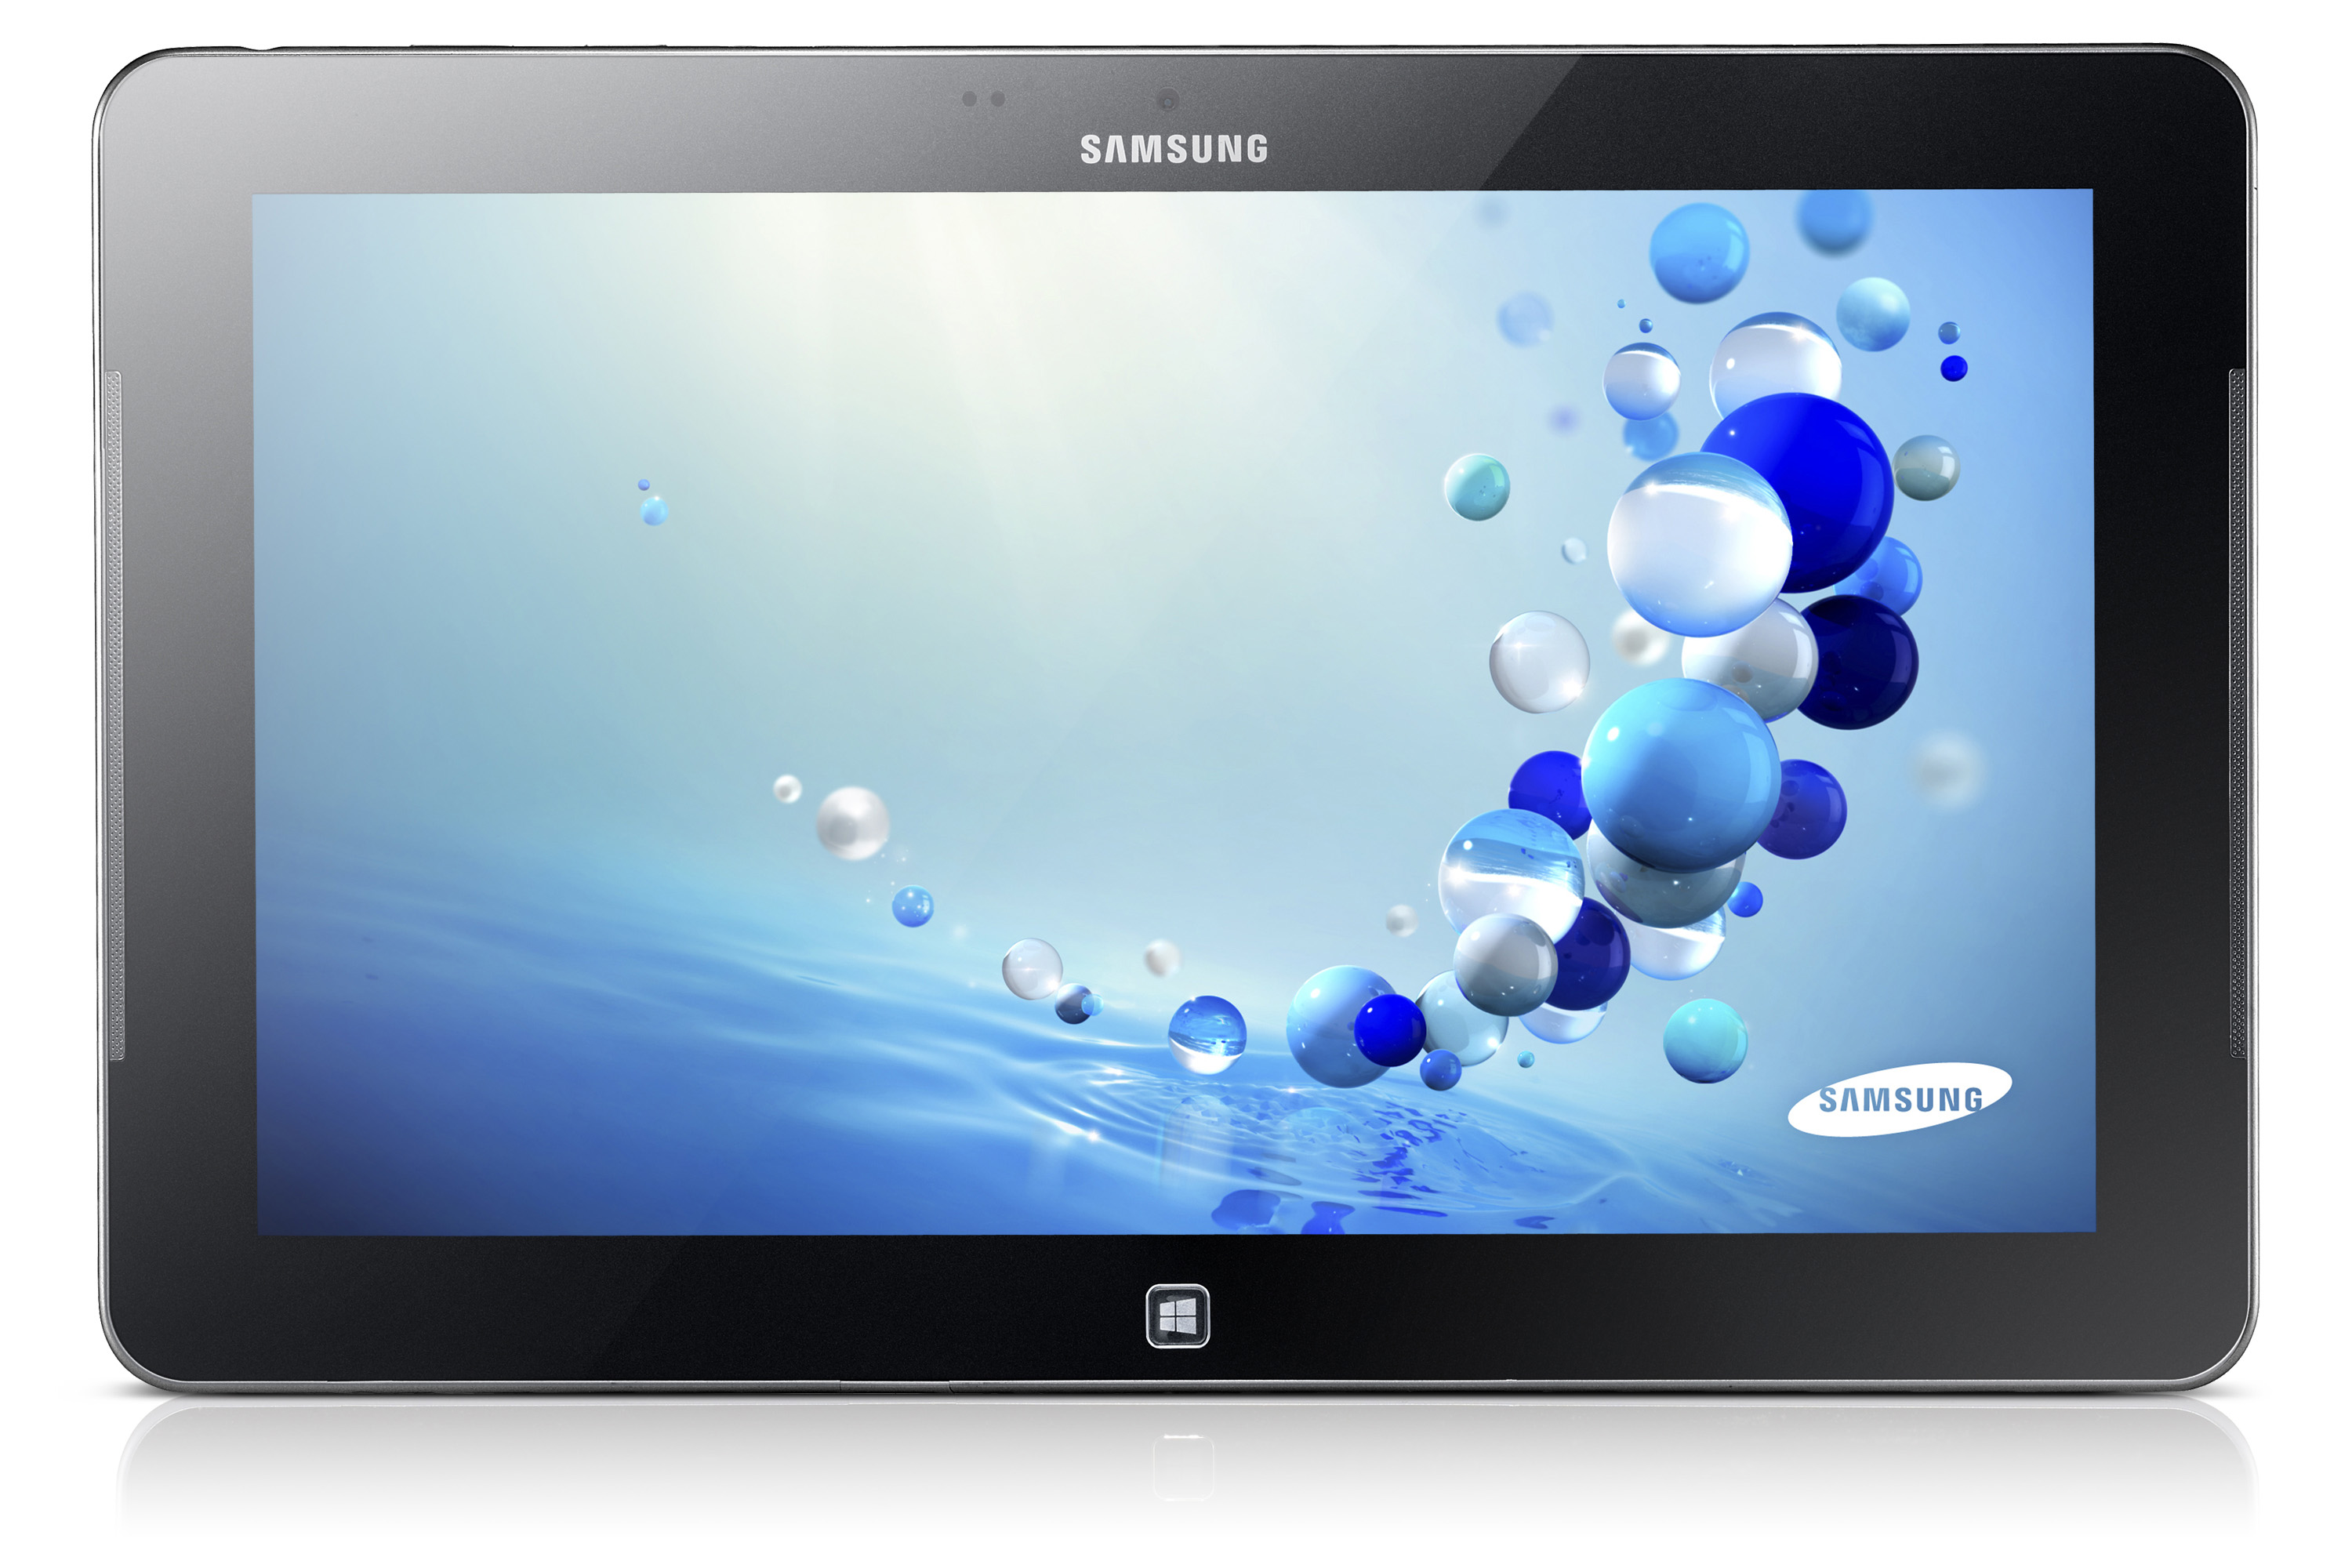 Samsung-ATIV-Smart-PC-500T-3G